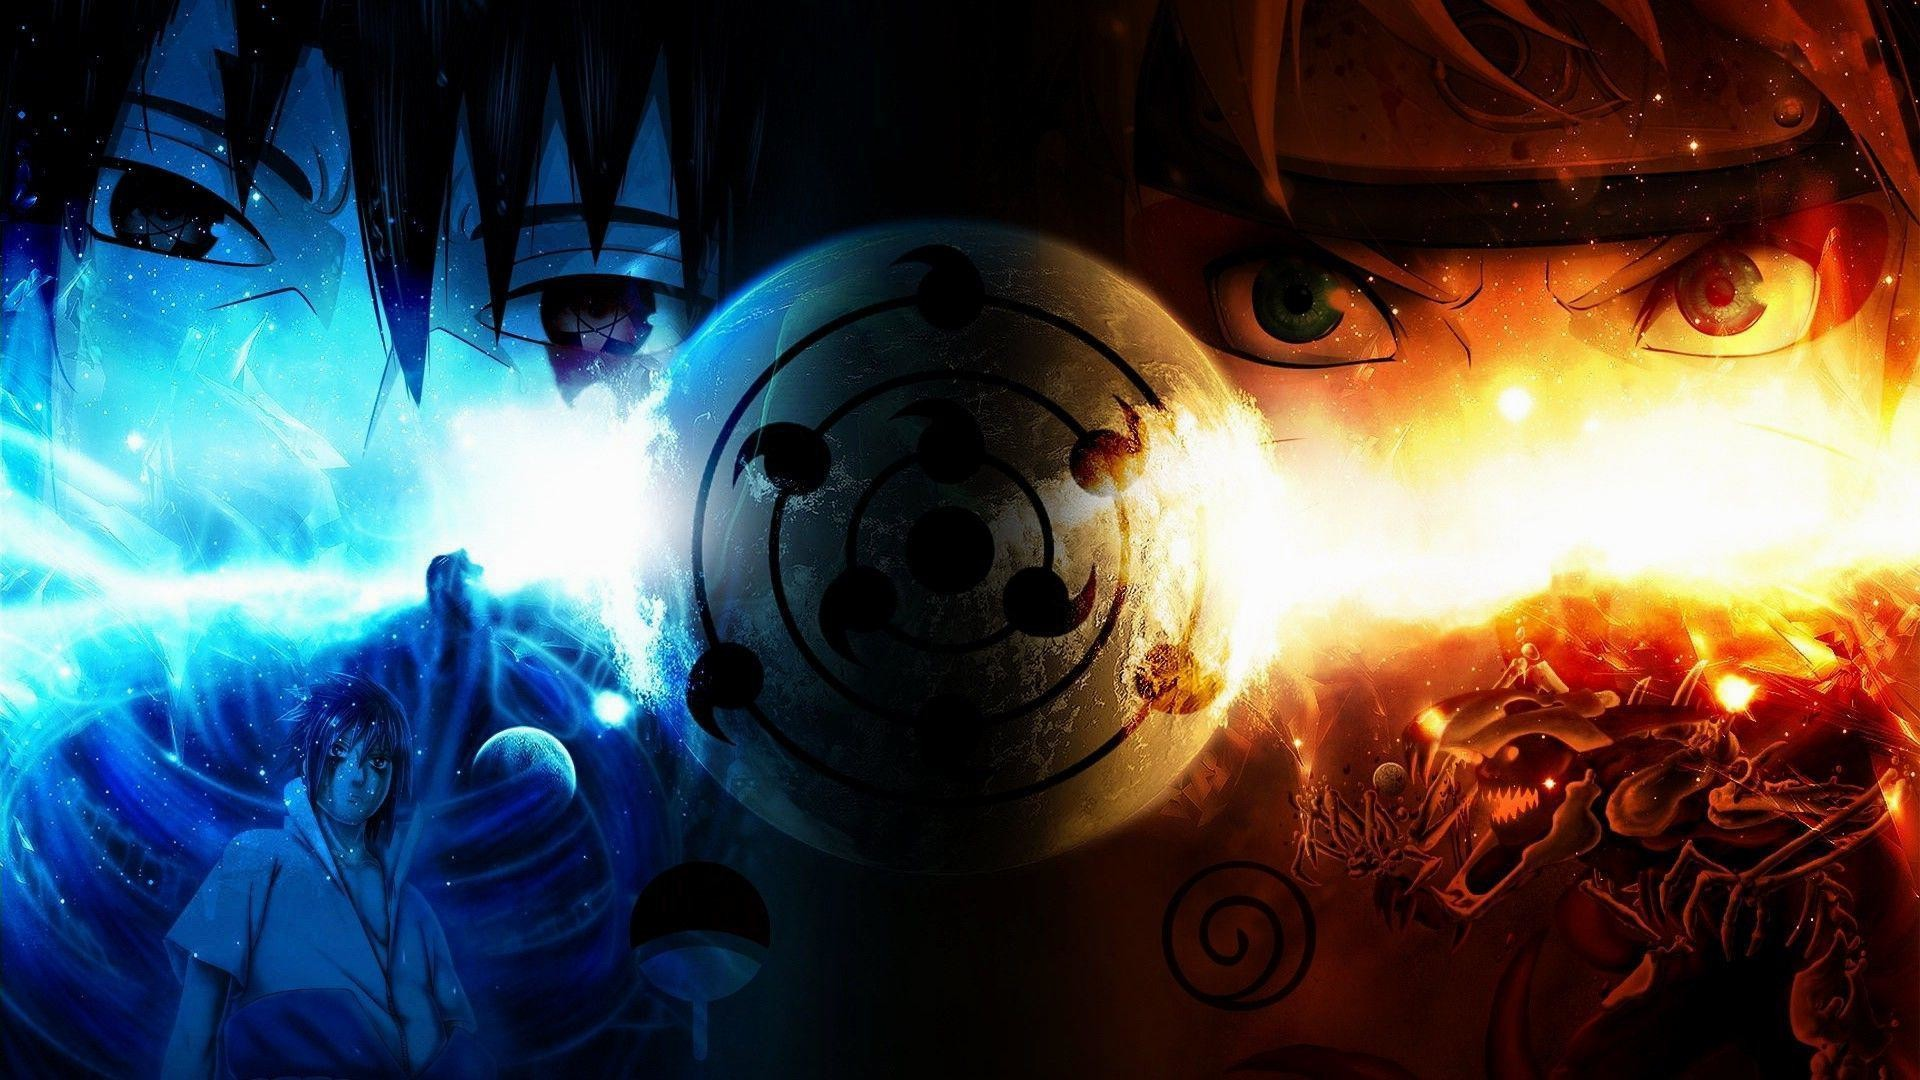 wallpaper.wiki-Naruto-fire-and-ice-hd-anime-wallpaper -1920×1080-PIC-WPE0014120